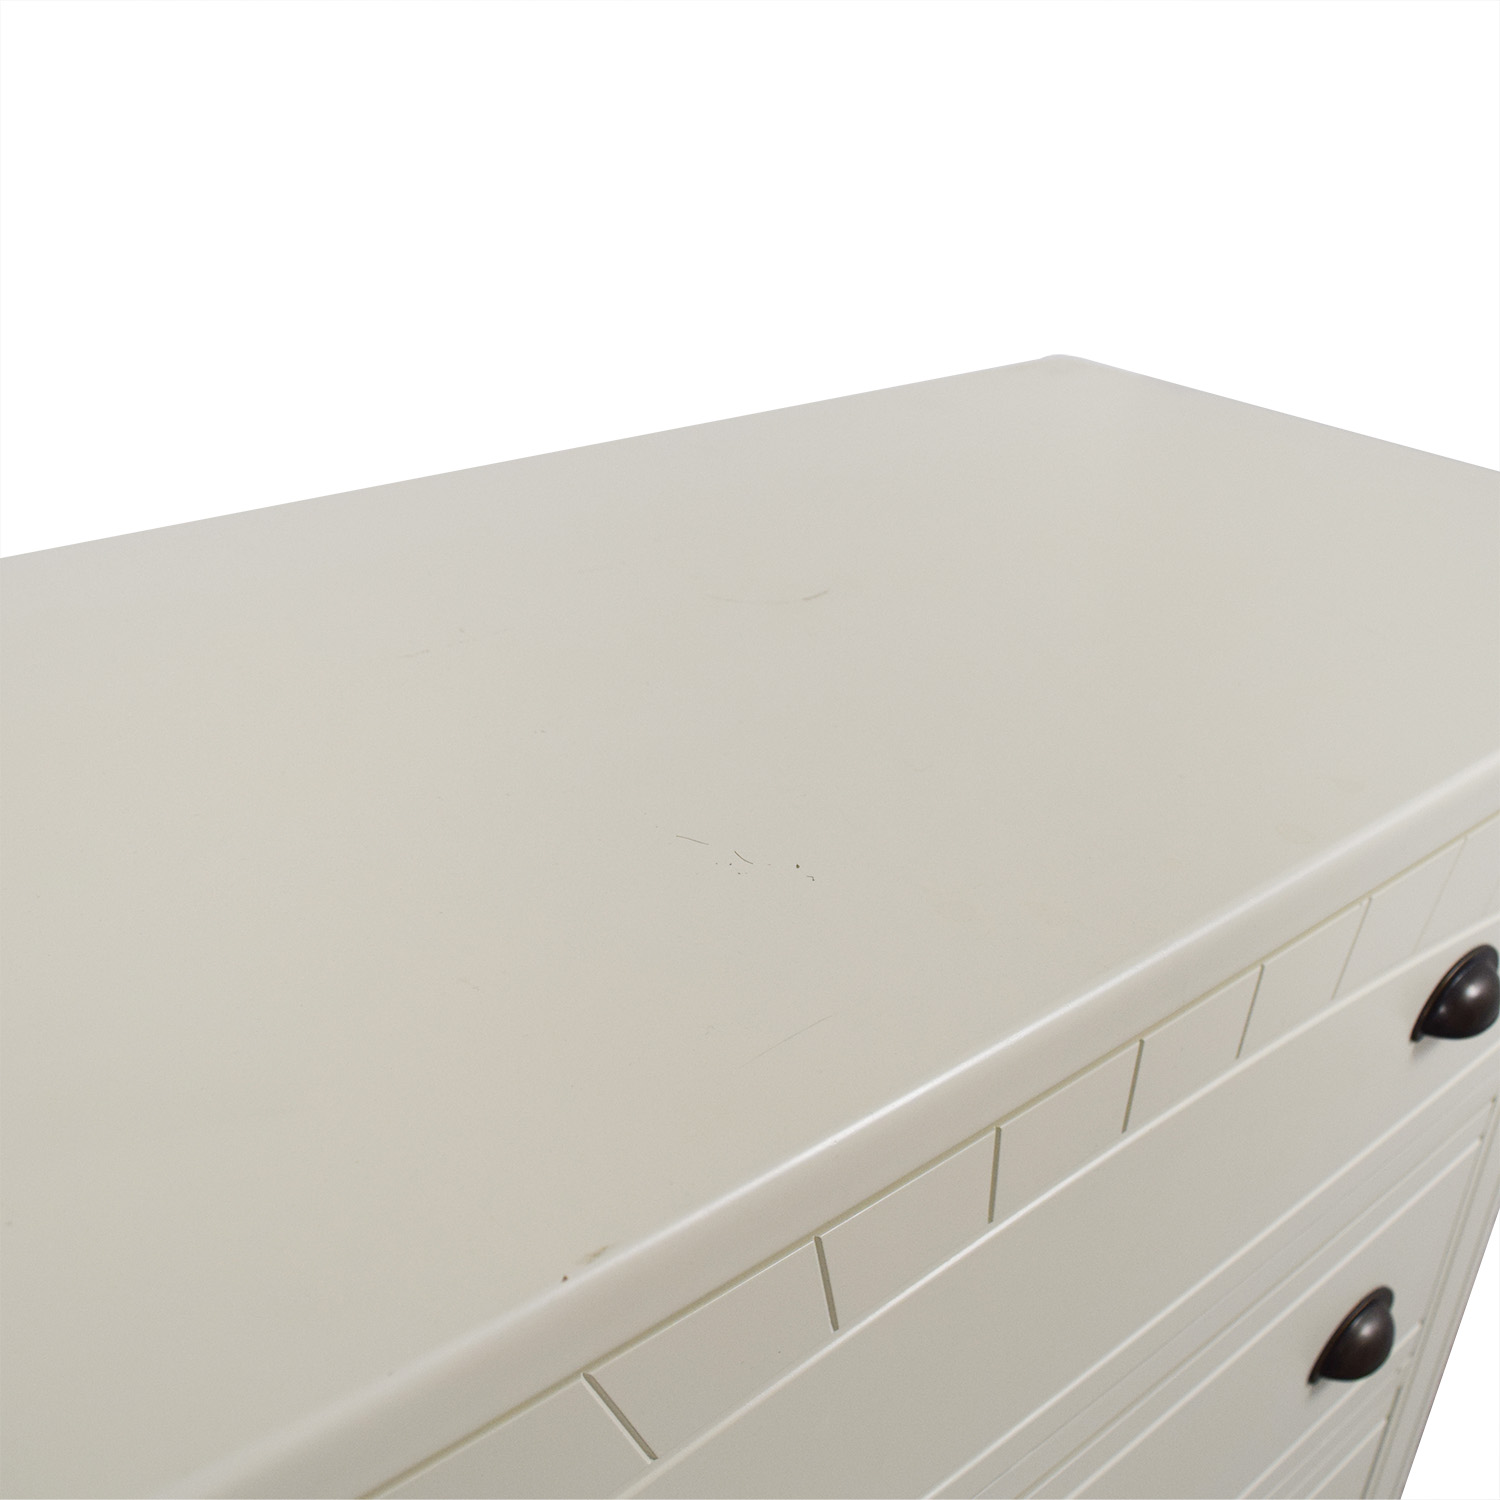 Bobs Furniture Bobs Furniture White Five-Drawer Chest nyc